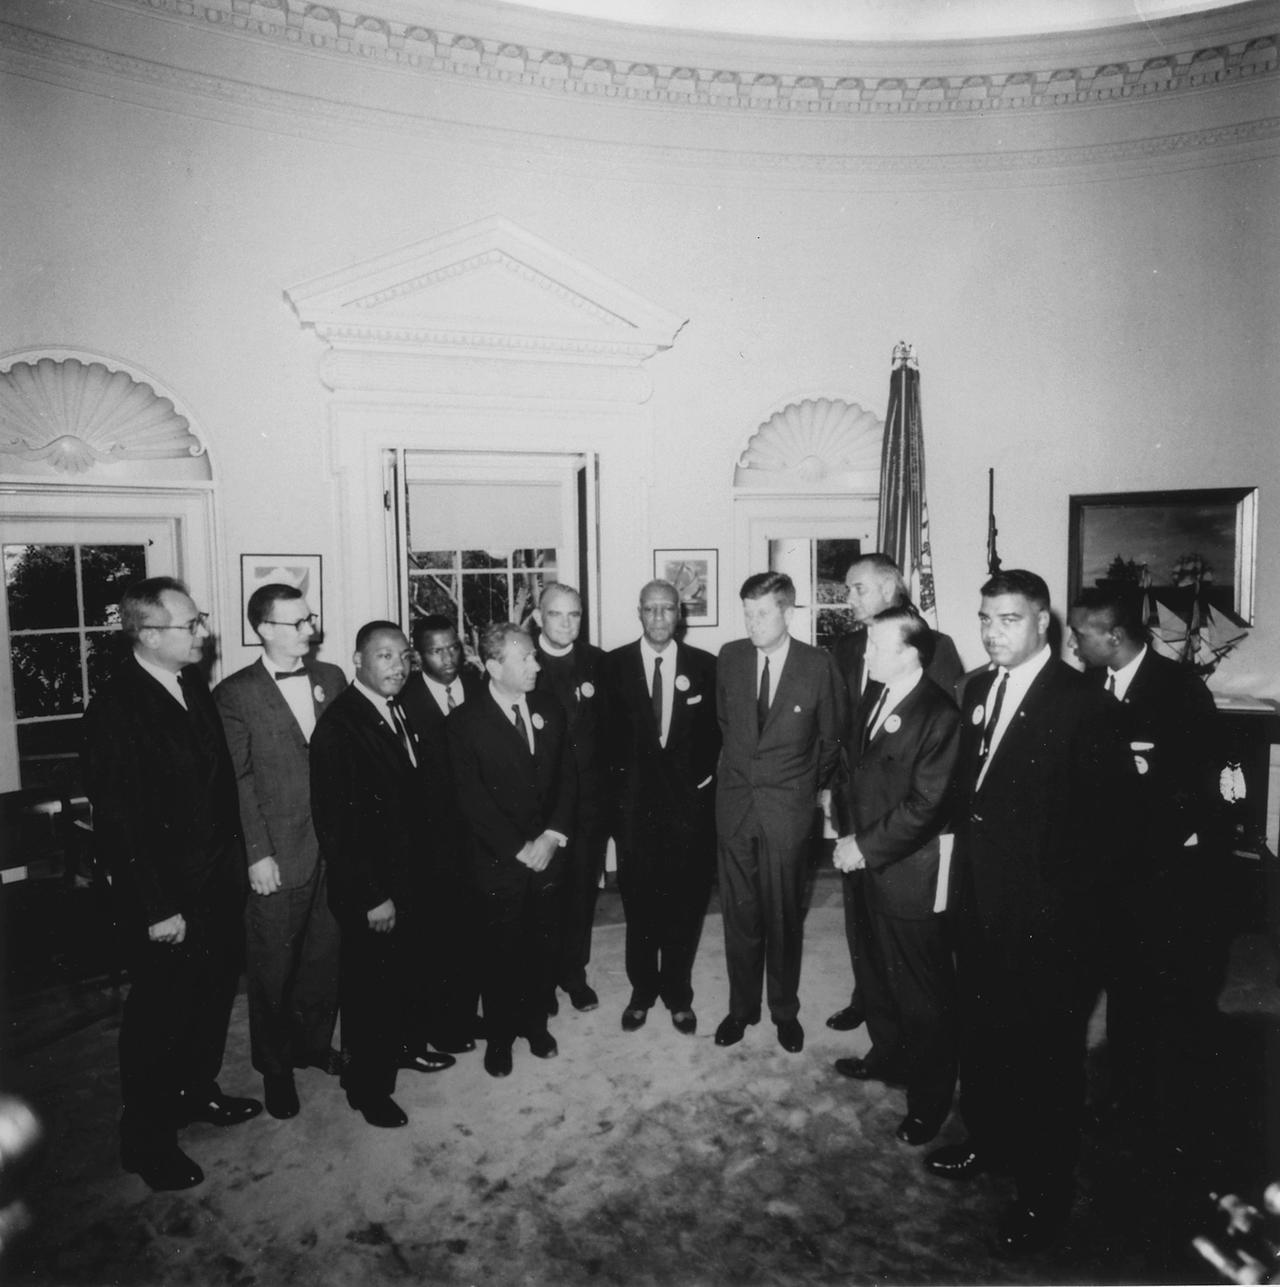 President Kennedy Meeting with Leaders of the March on Washington